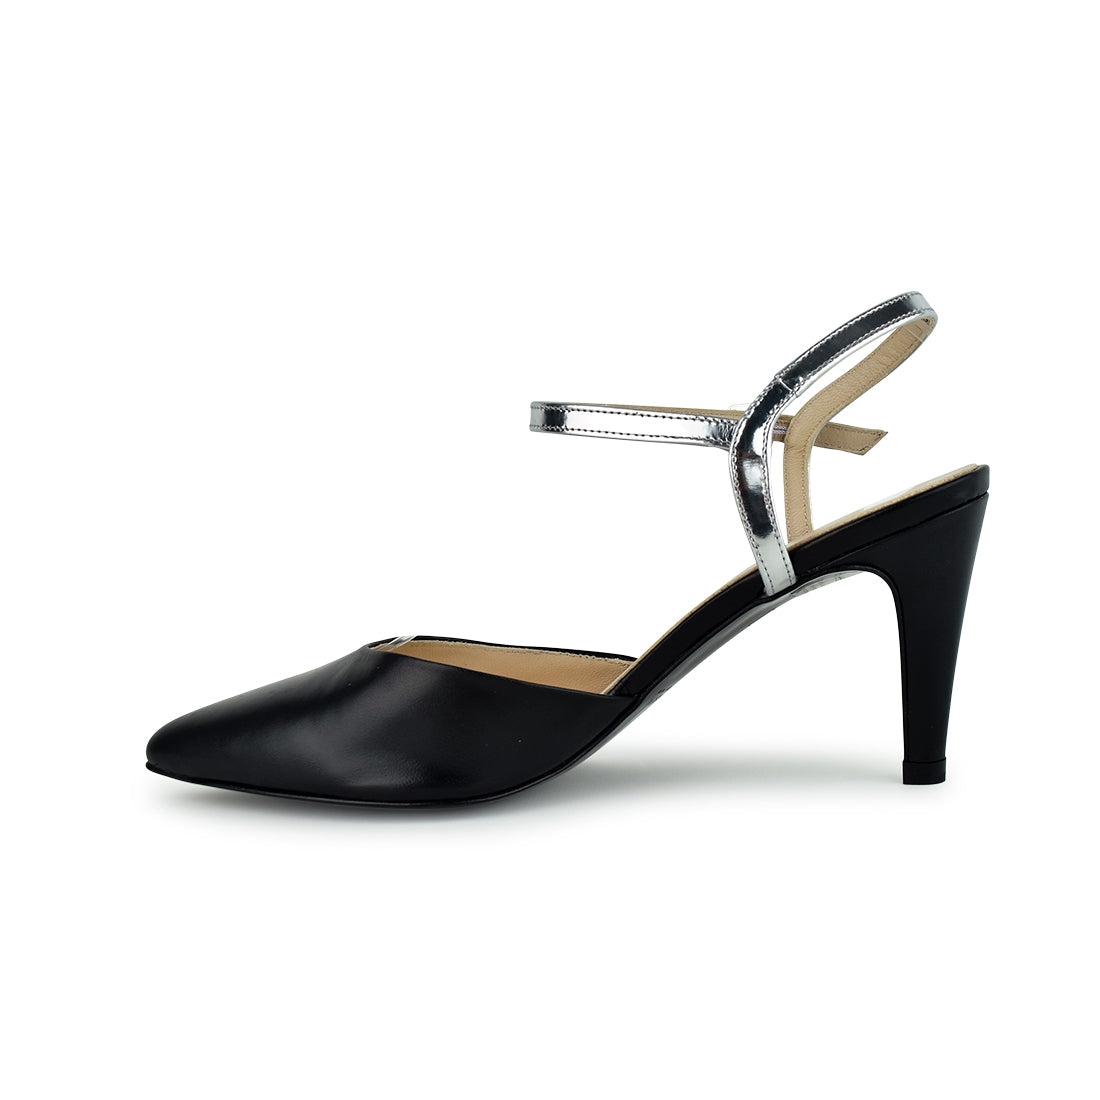 KIKKA - Peter Kaiser Closed Toe Black/Silver